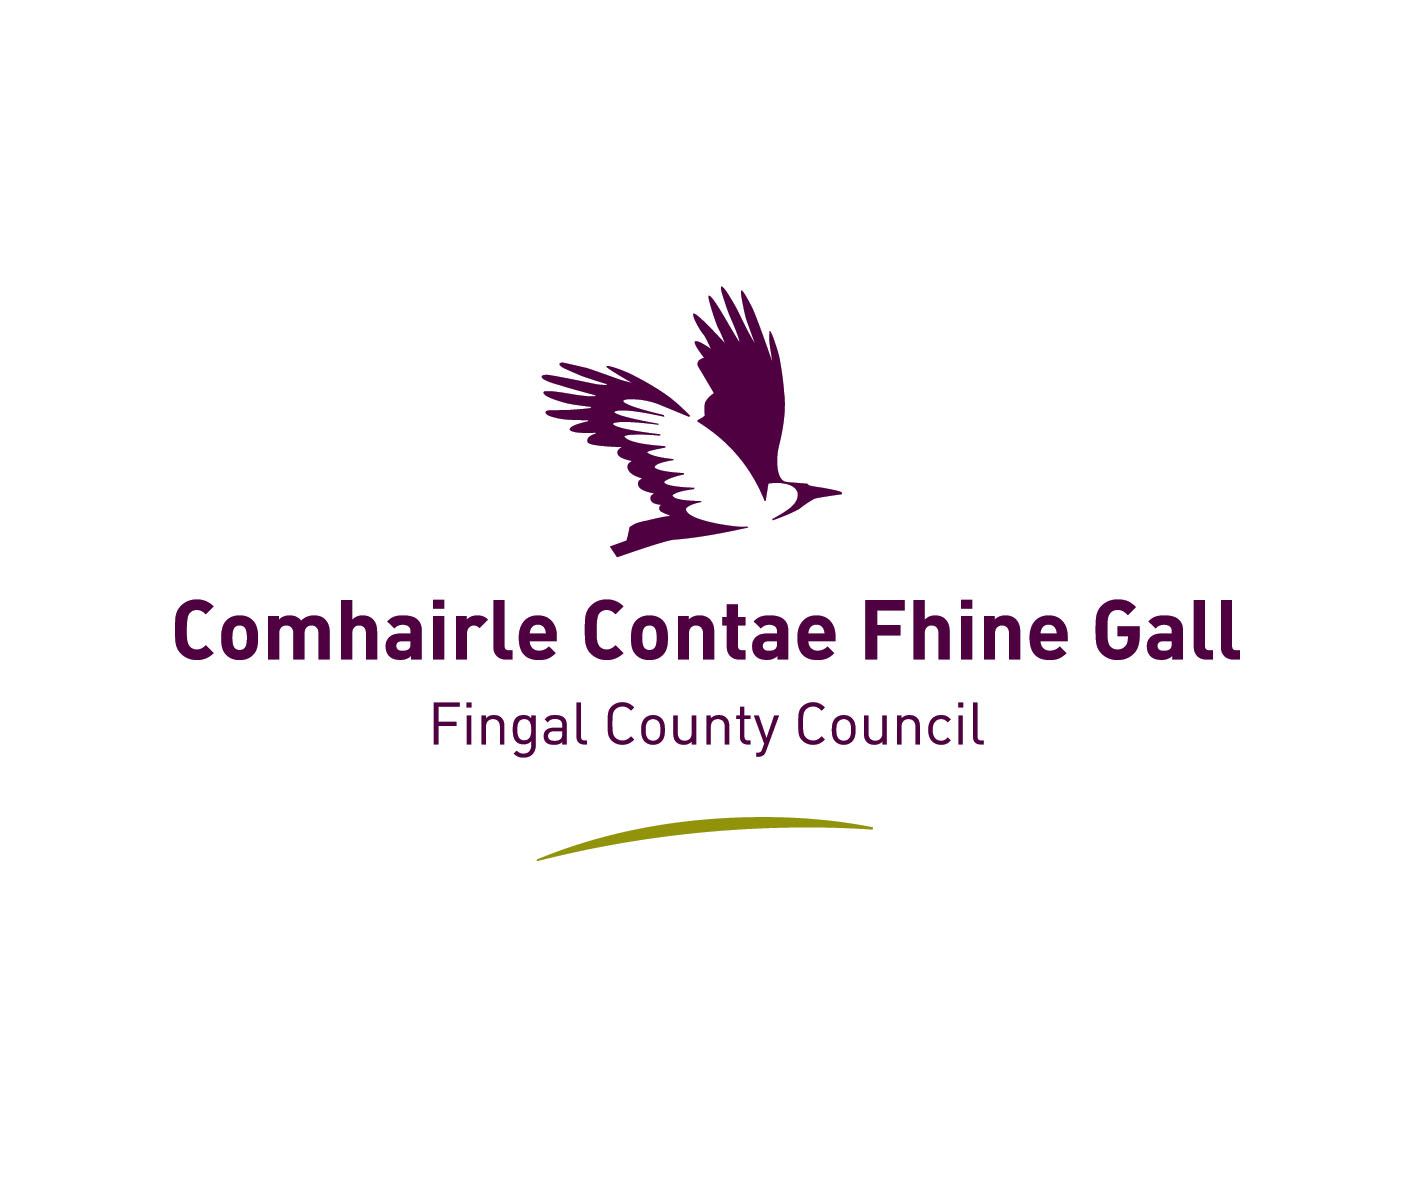 zzzz-fingal-county-council-logo-for-grant-post